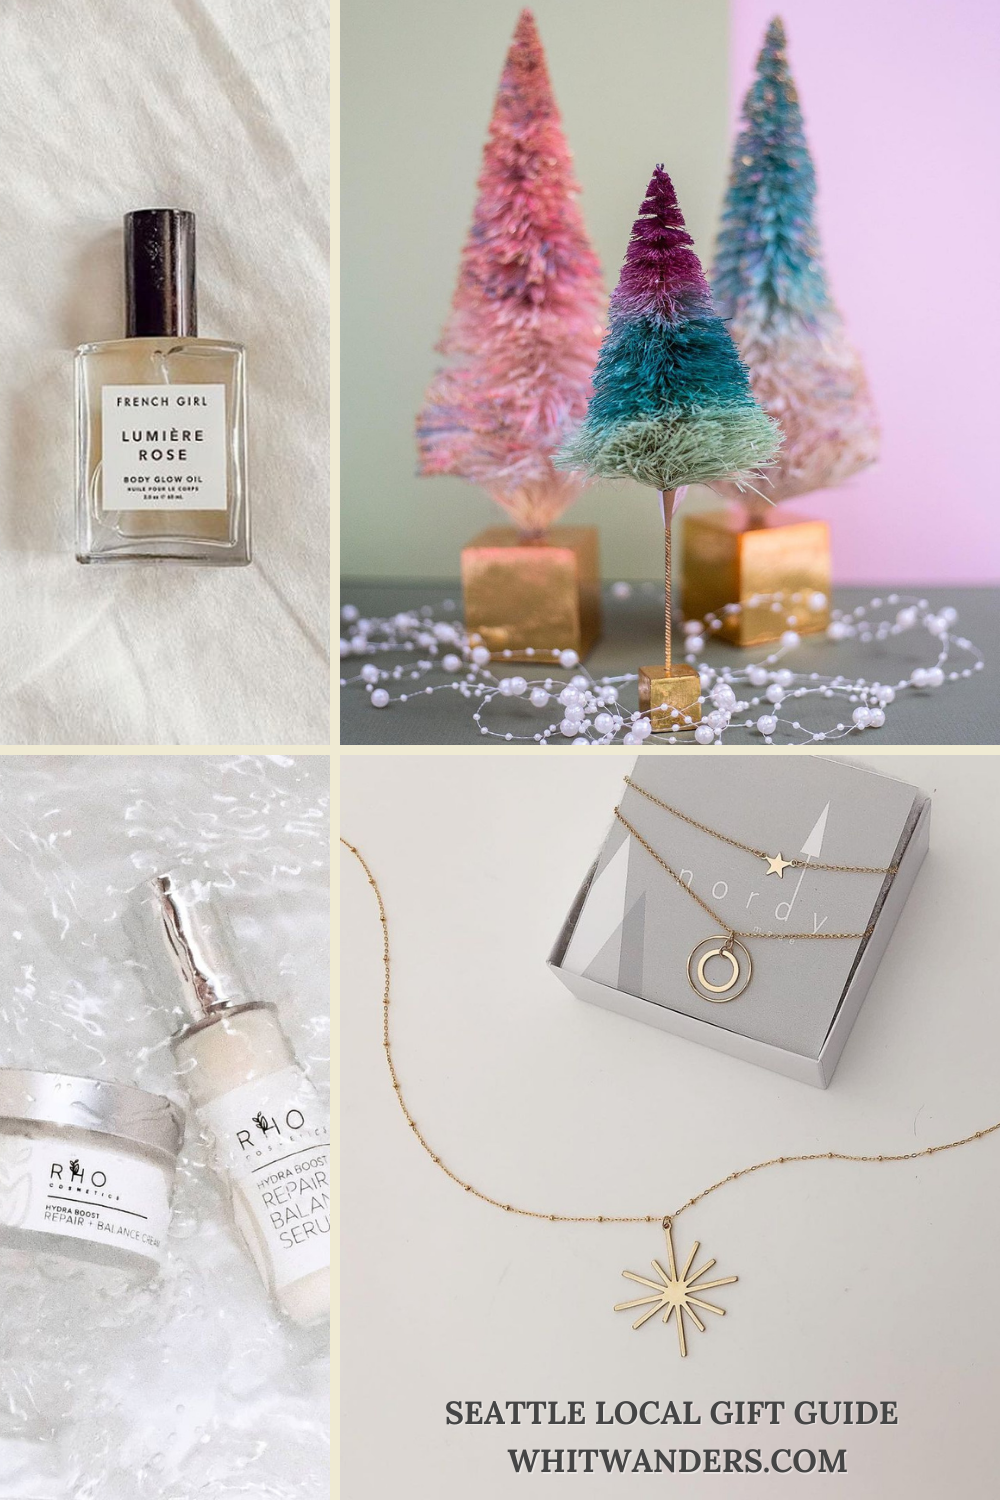 Shop Local by popular Seattle life and style blog, Whit Wanders: collage image of perfume, Nordy gold necklaces, bottle brush Christmas trees, and RHO balm and serum.